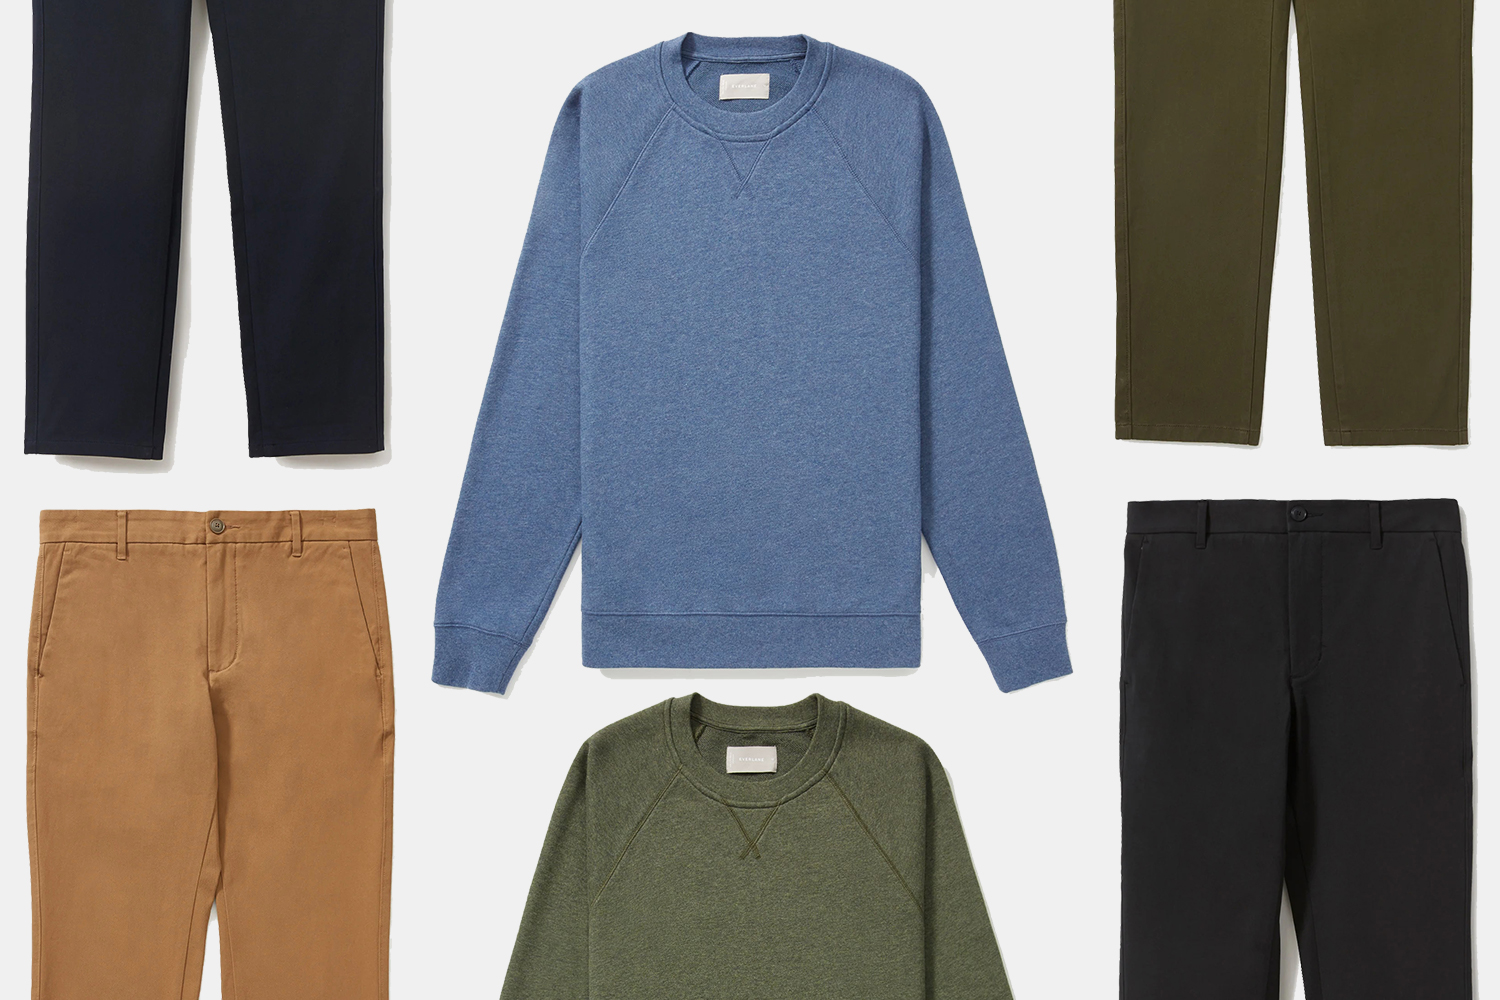 Everlane men's sweaters and chinos